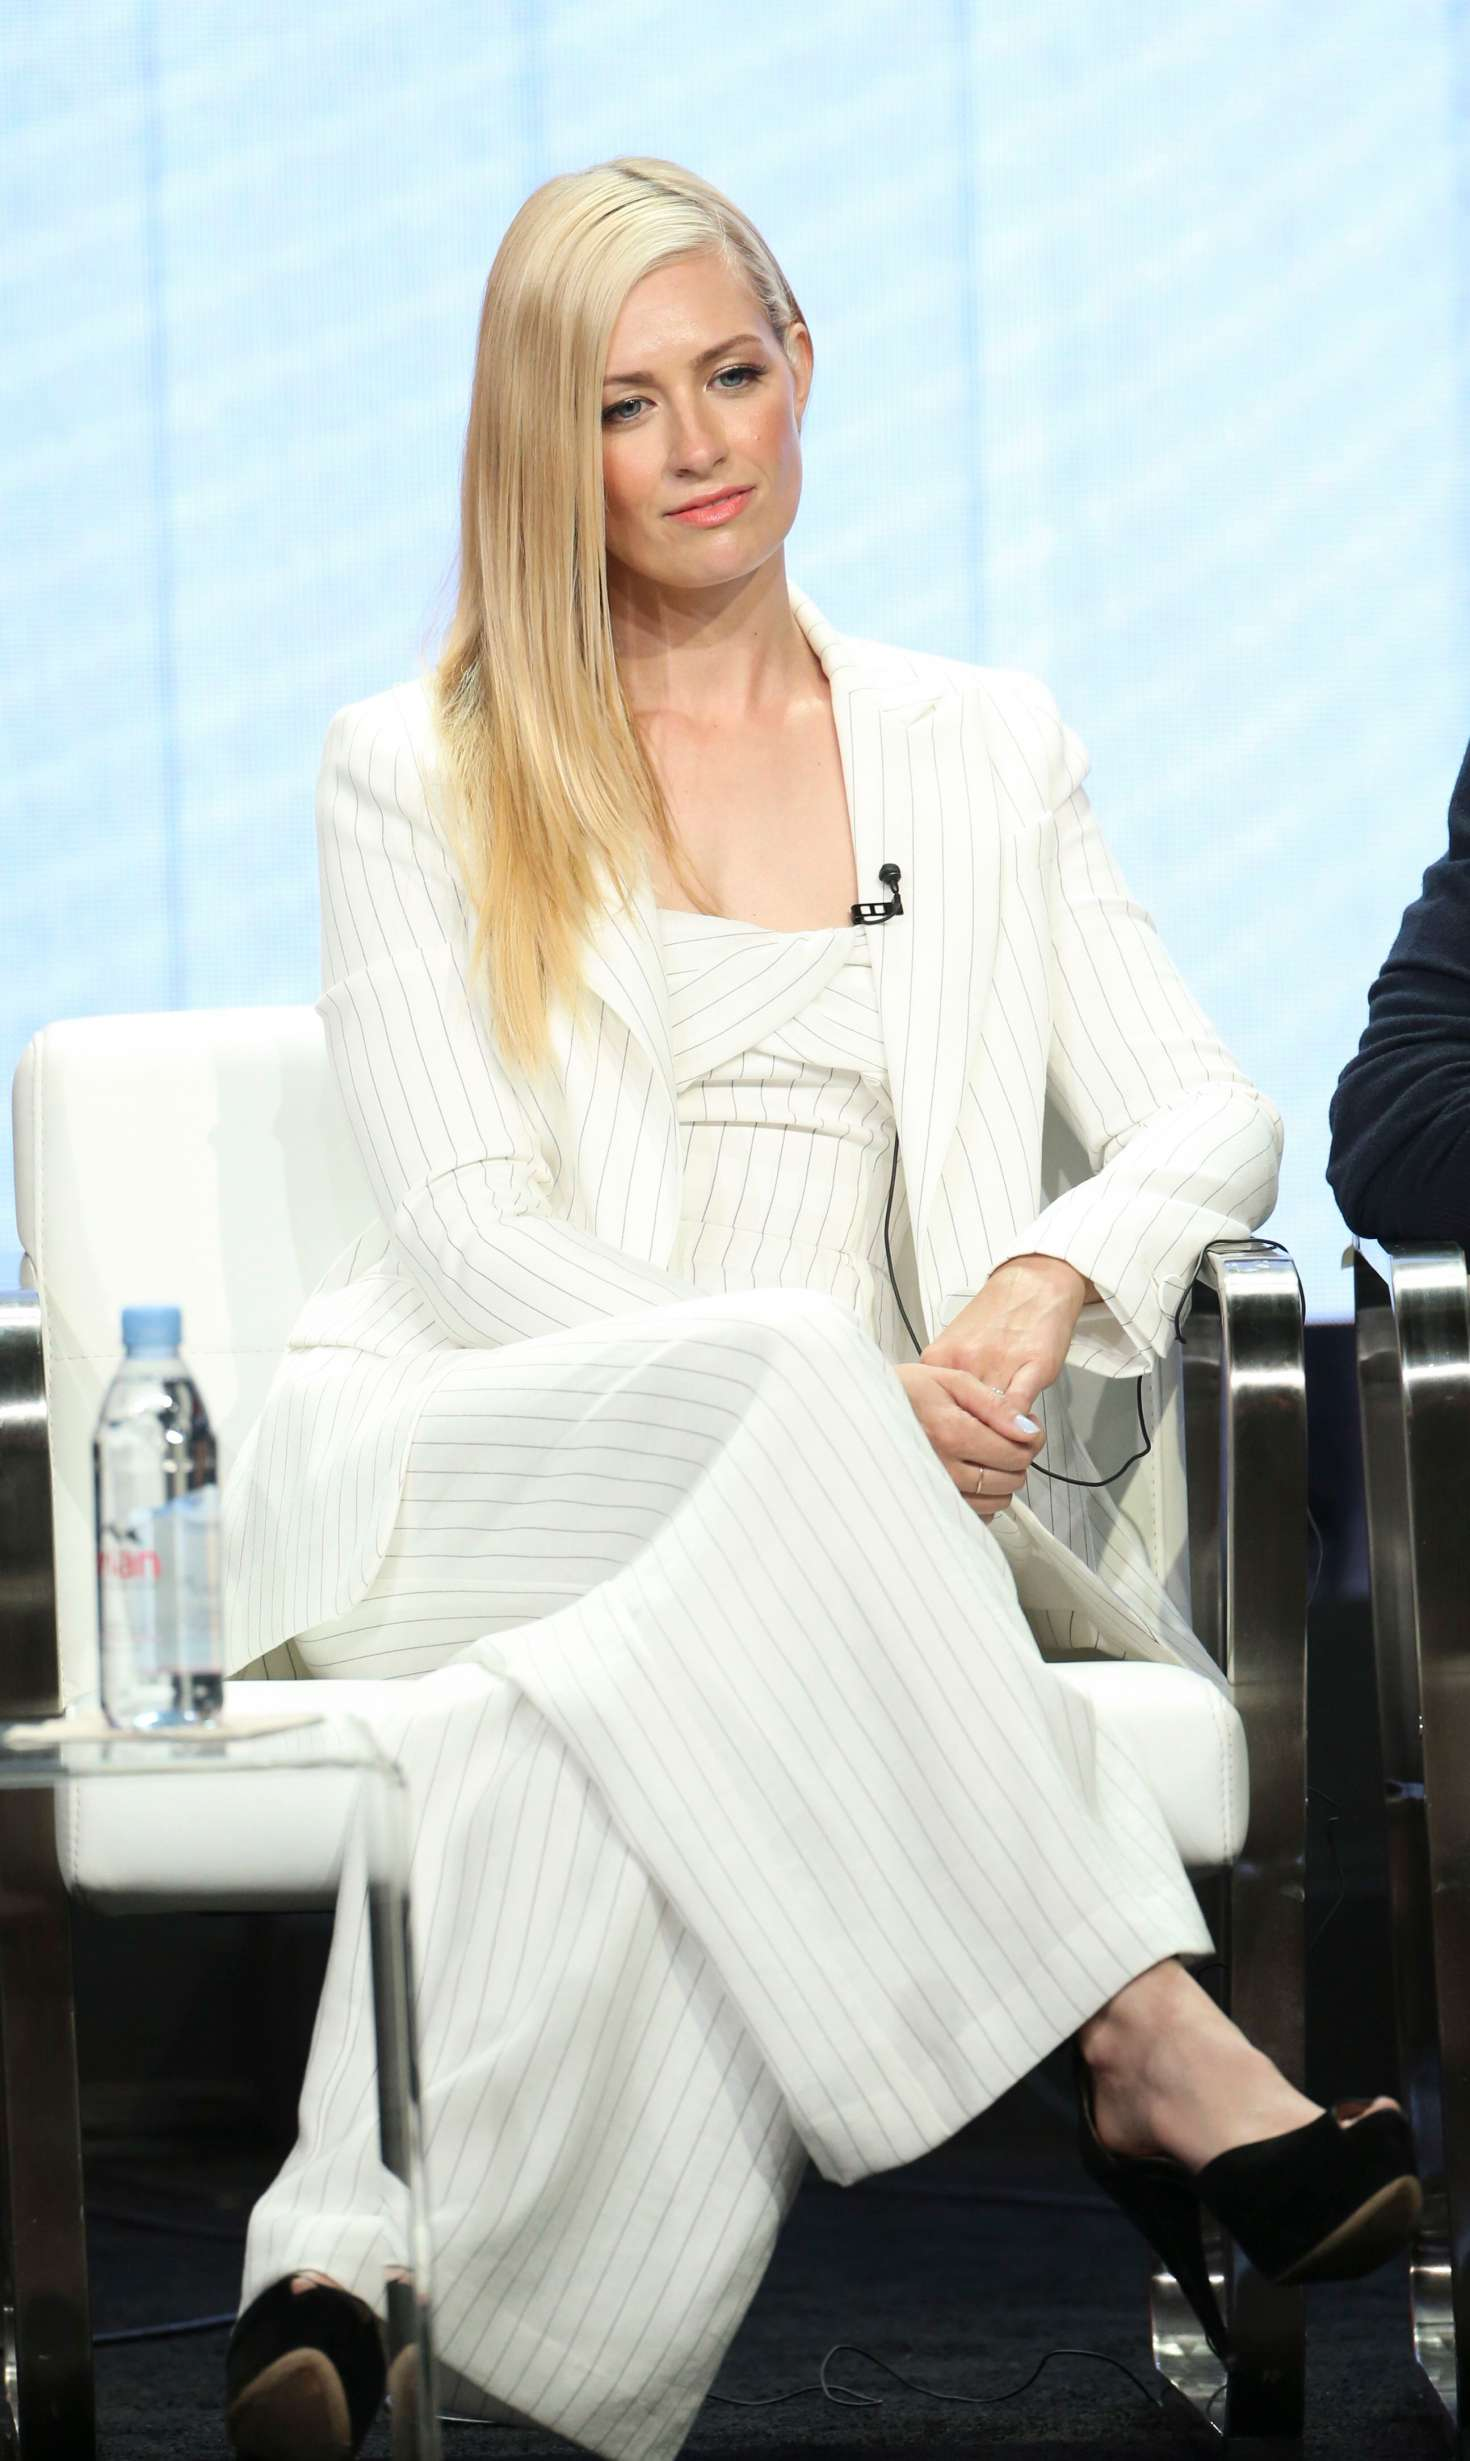 Beth Behrs 2018 : Beth Behrs: The Neighborhood Panel at 2018 TCA Summer Press Tour -07